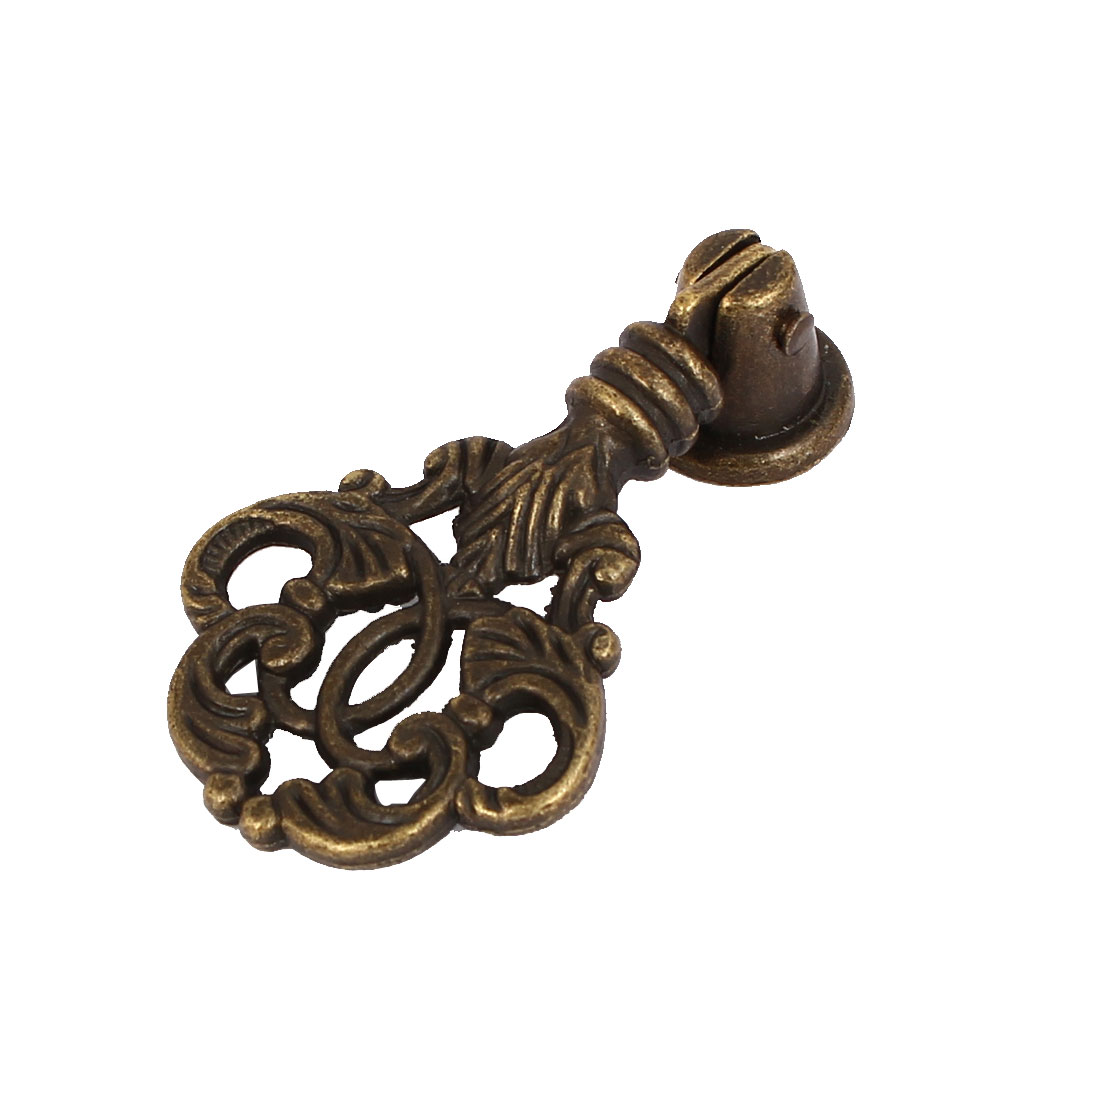 Cabinet Dresser Drawer Alloy Retro Style Pull Handle Knob Bronze Tone